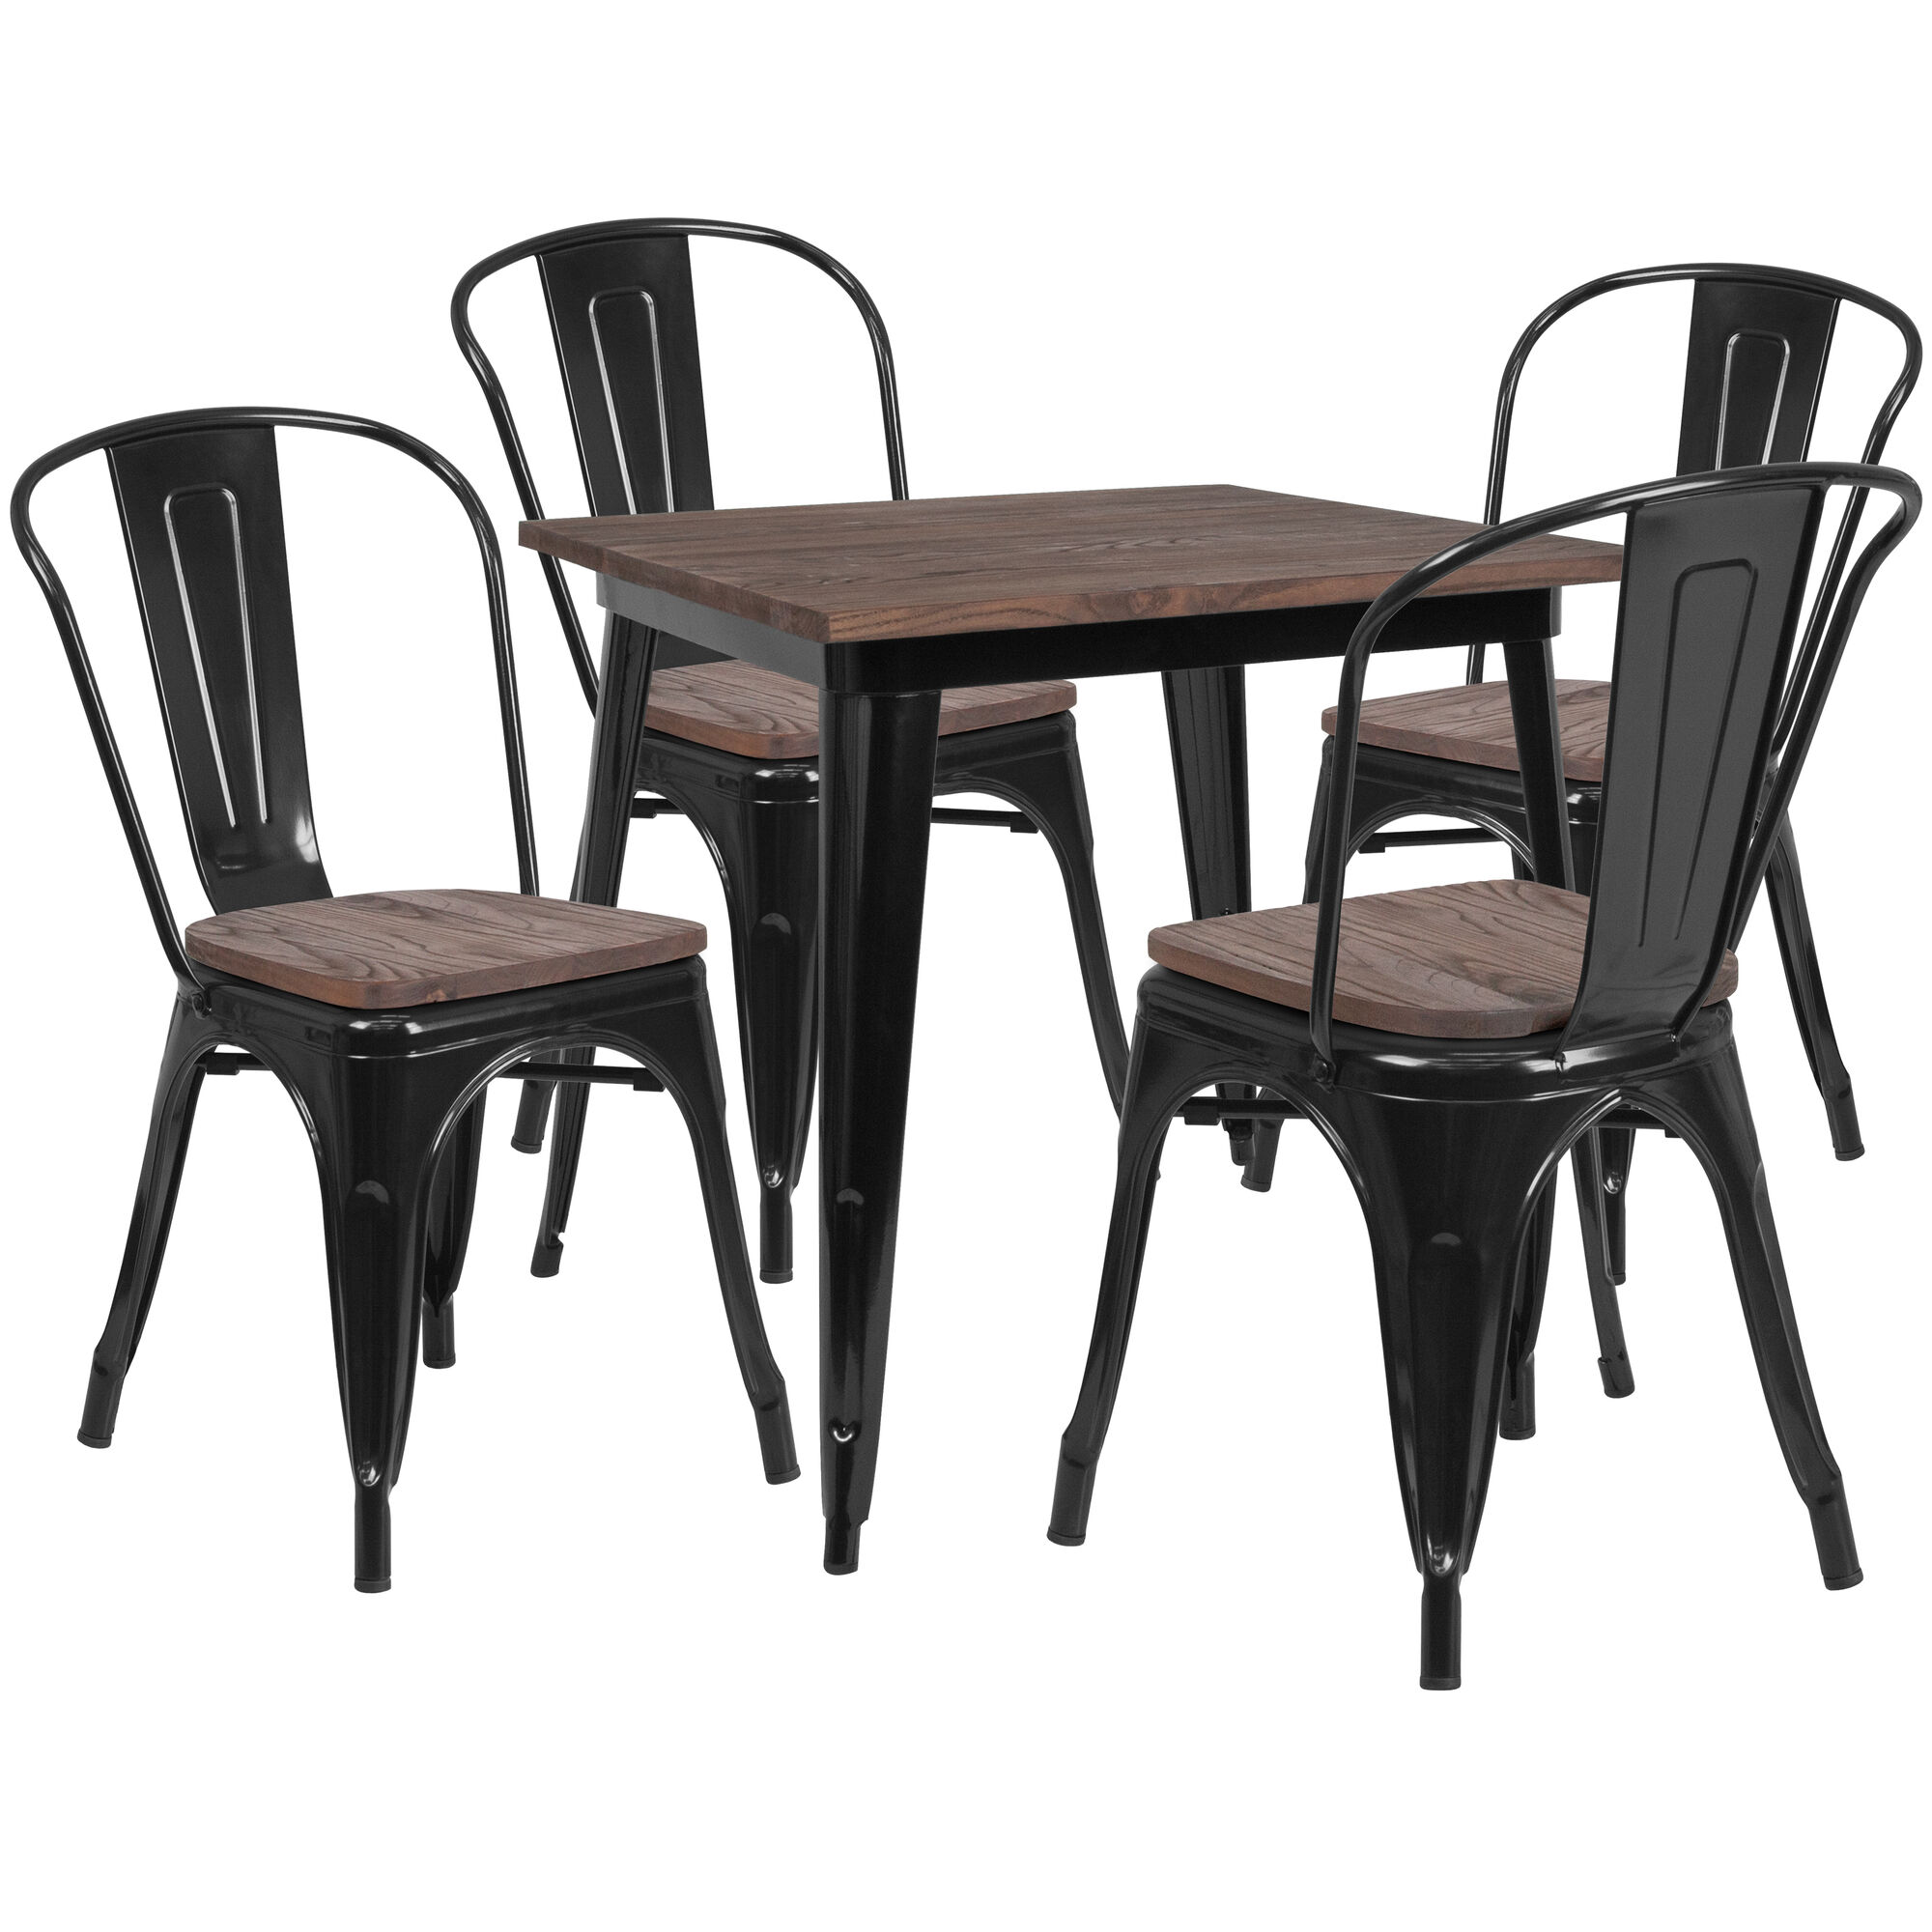 Miraculous 31 5 Square Black Metal Table Set With Wood Top And 4 Stack Chairs Theyellowbook Wood Chair Design Ideas Theyellowbookinfo